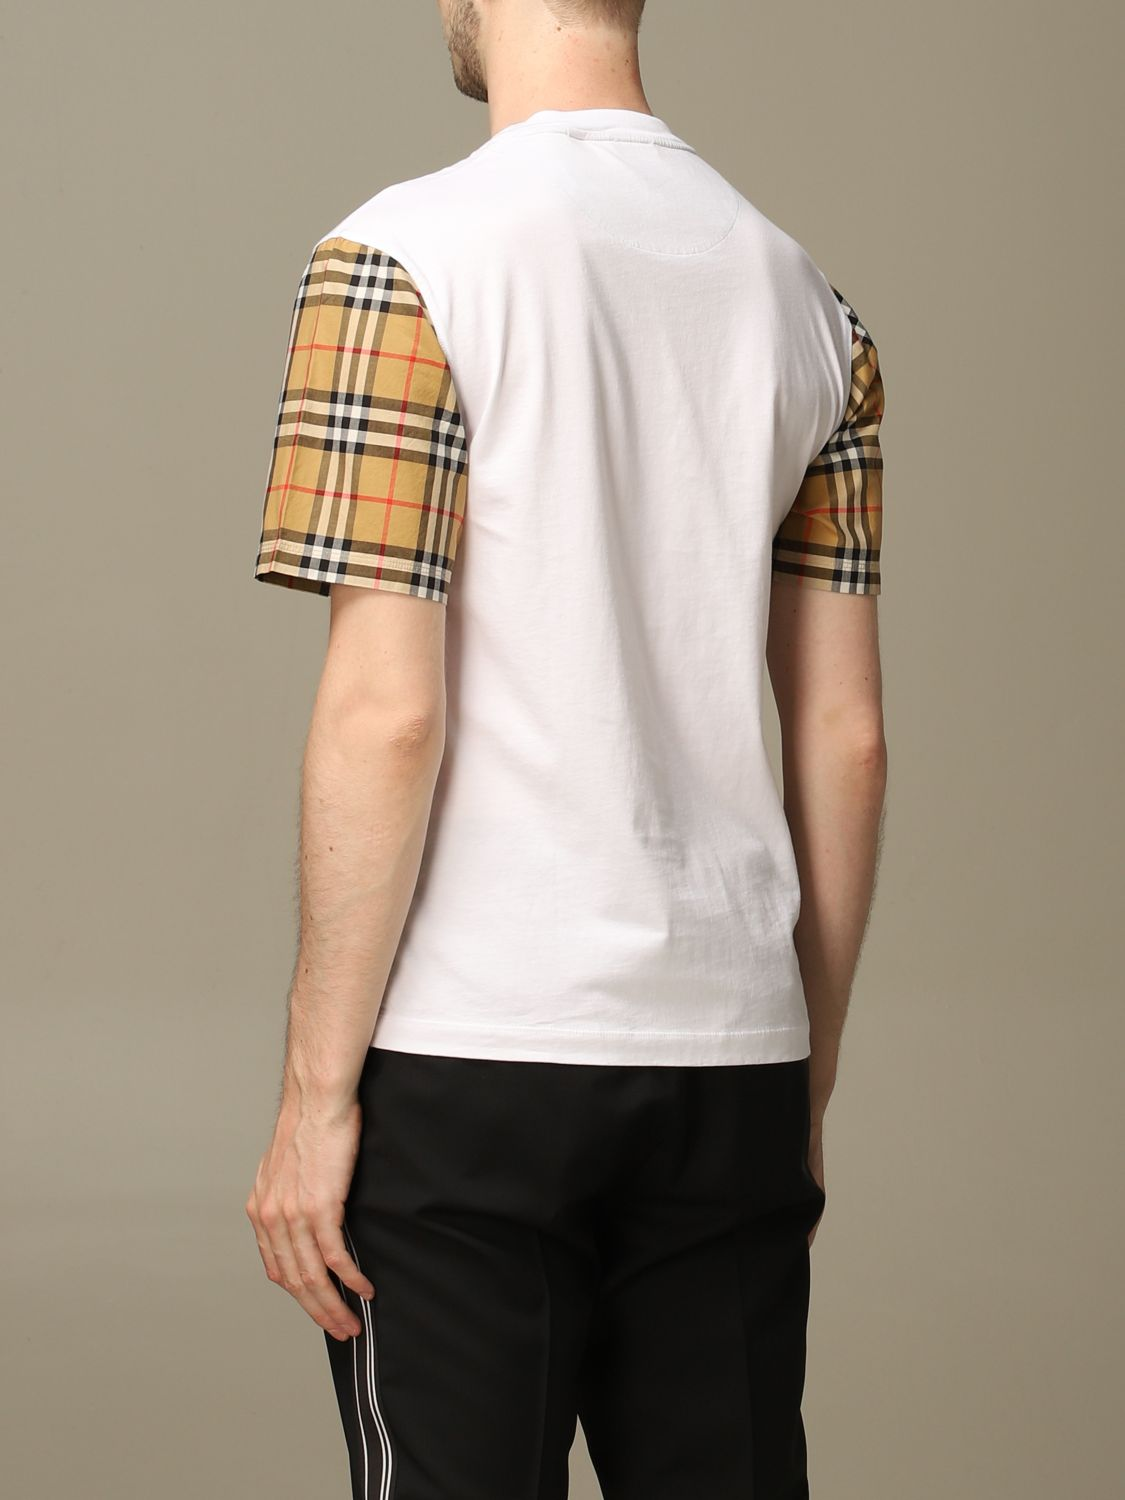 T-shirt Burberry: Burberry stretch cotton T-shirt with check sleeves white 2